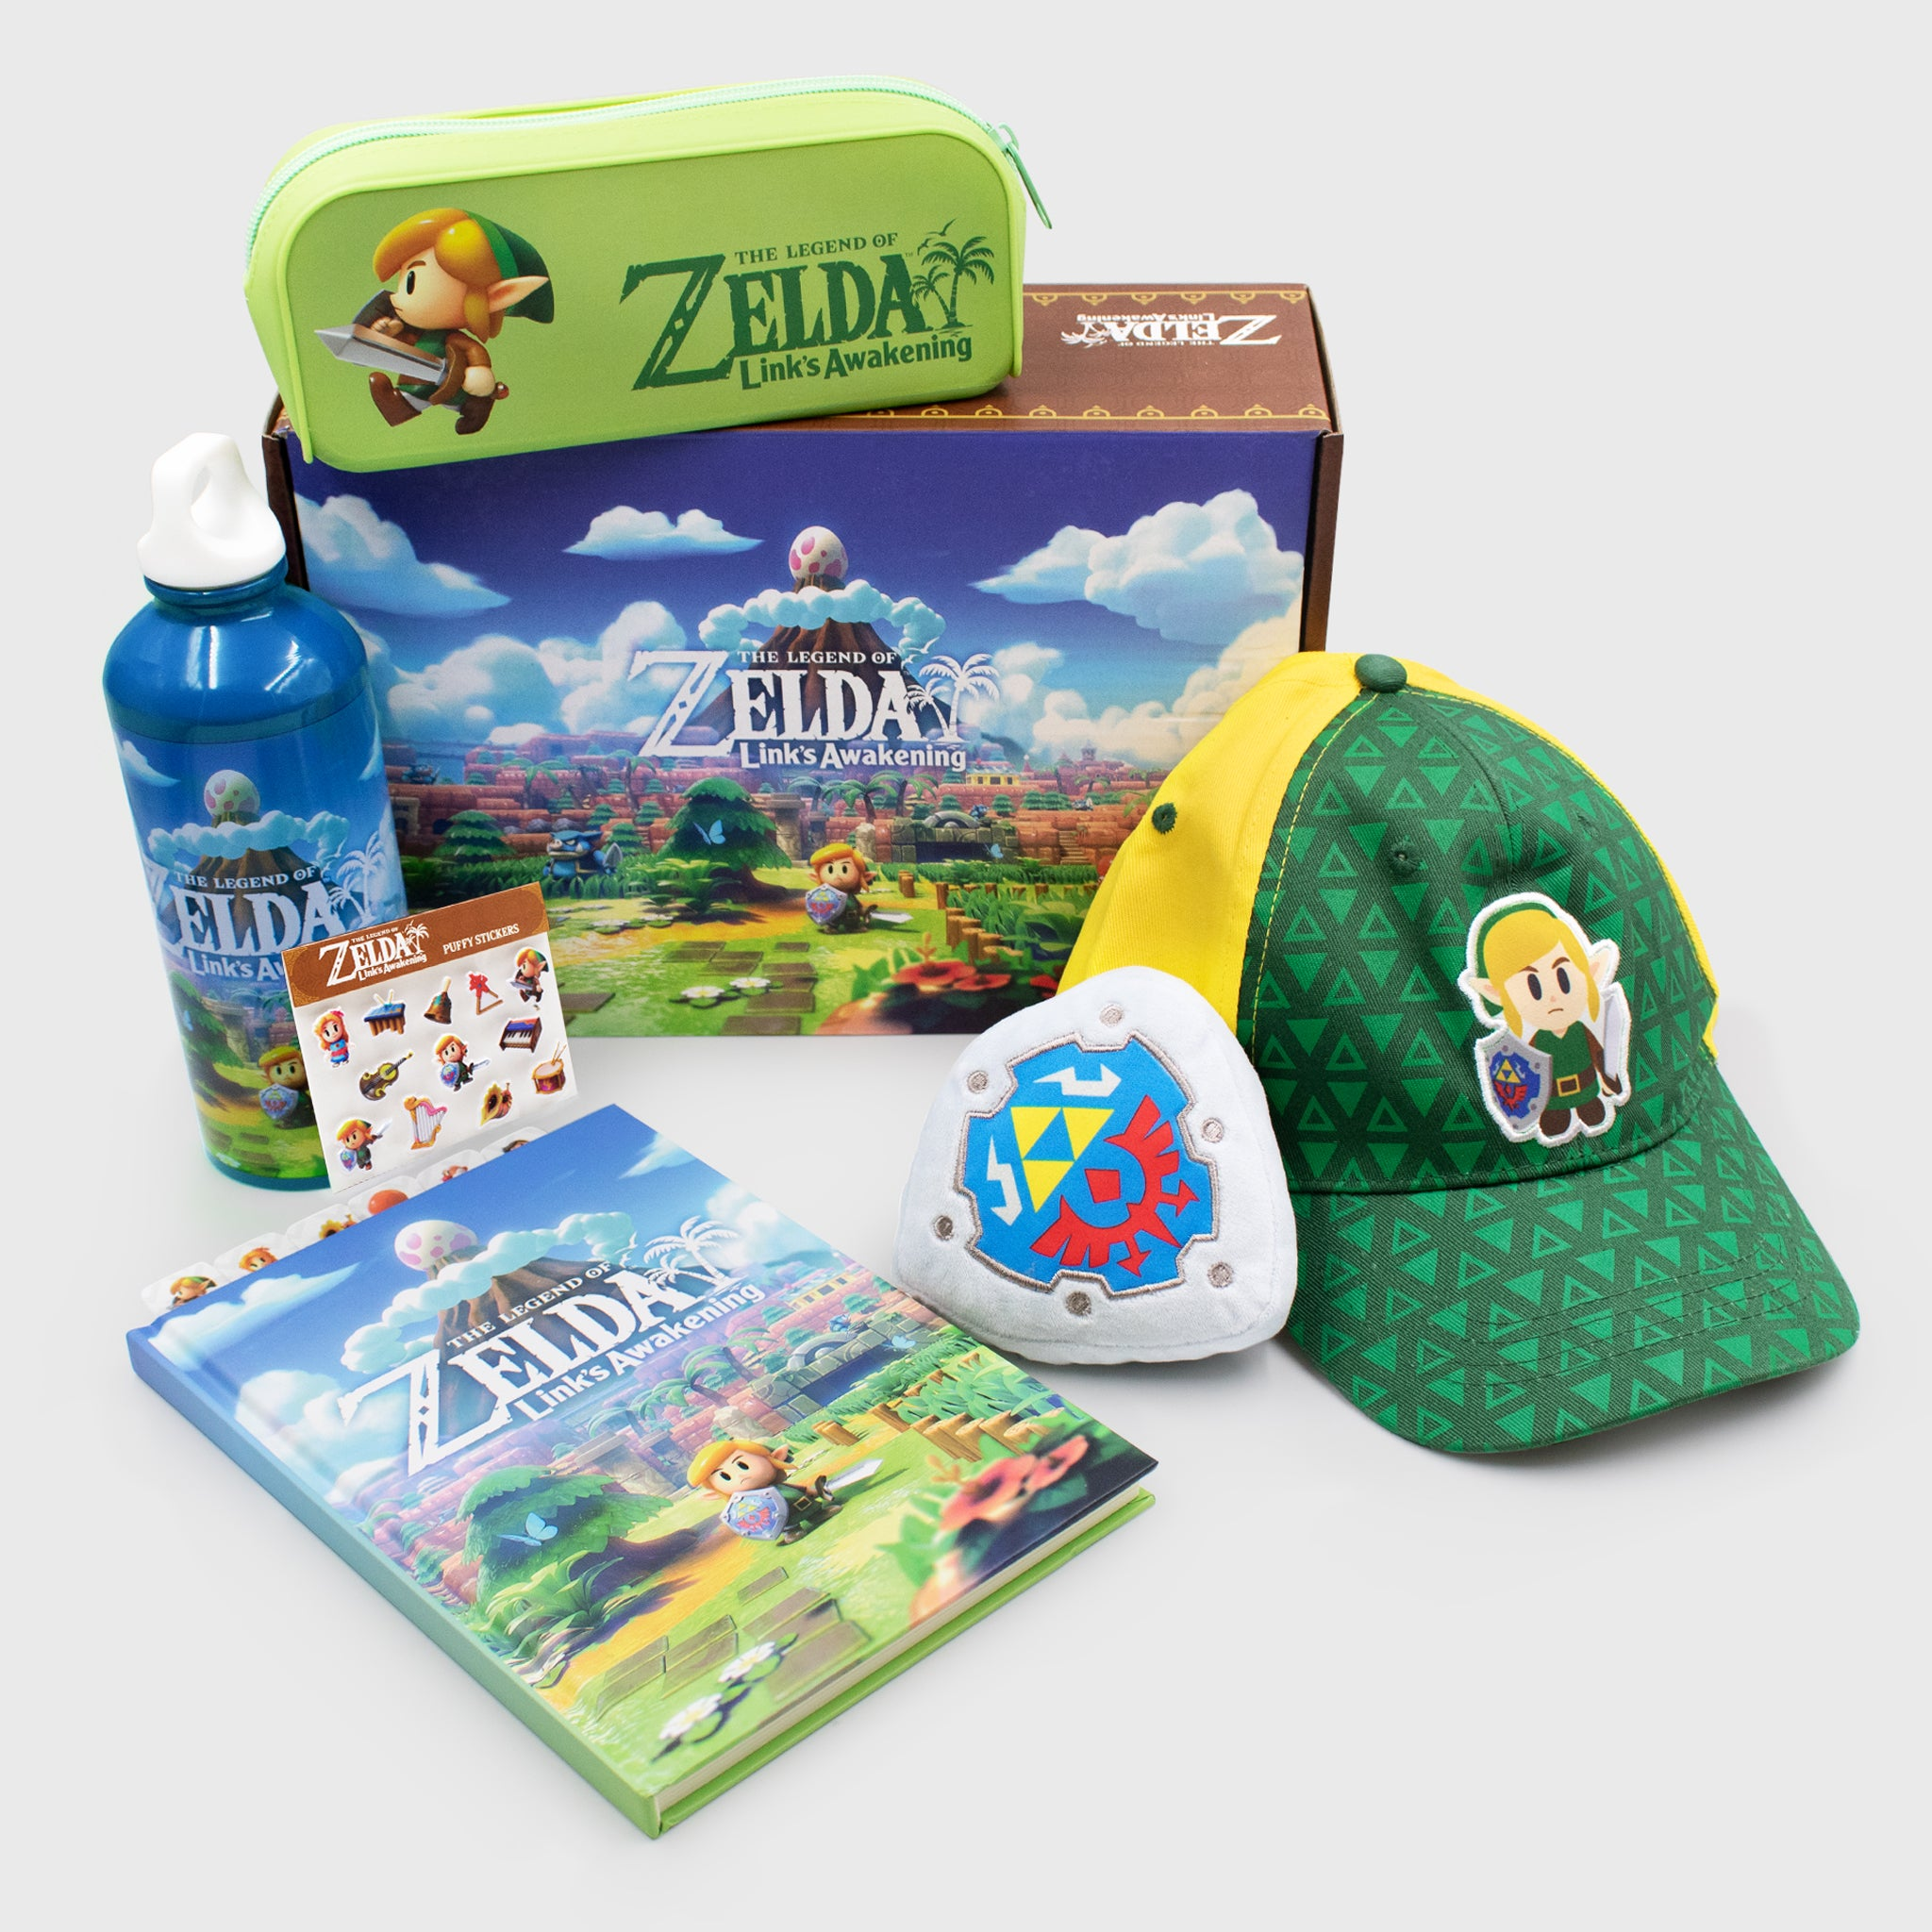 the legend of zelda link's awakening 2019 nintendo loz collector's box exclusive collectible hat pencil pouch plush water bottle stickers notebook culturefly